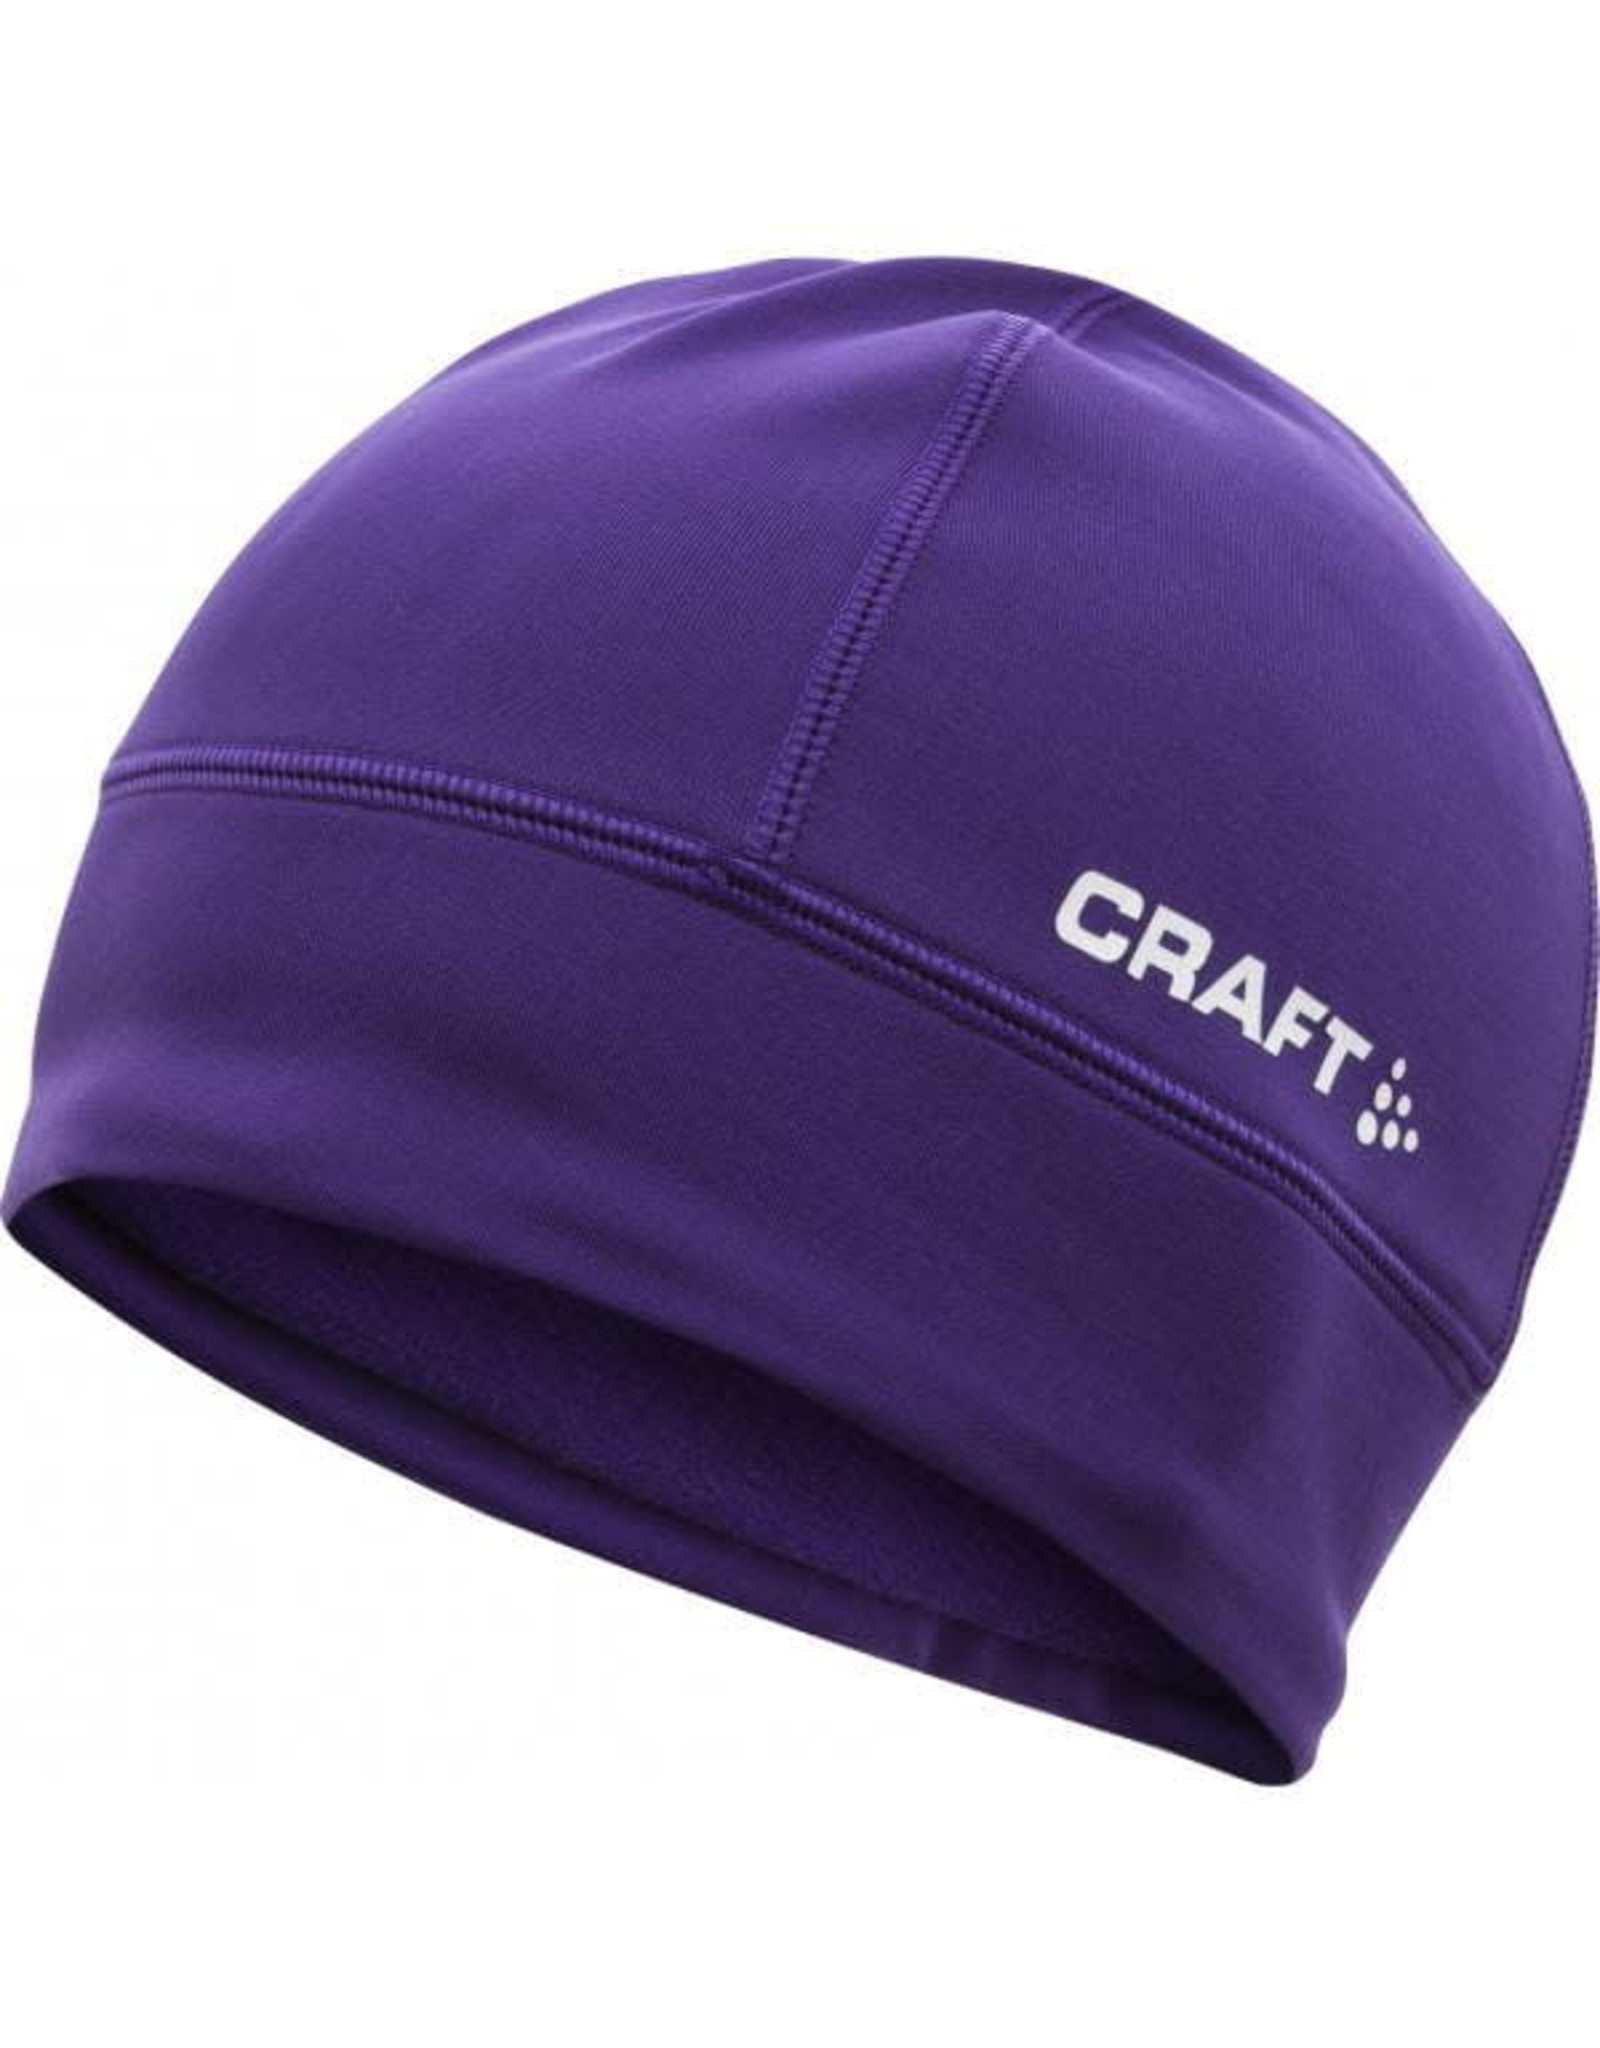 Craft Craft Light Thermal Hat w/o Flag